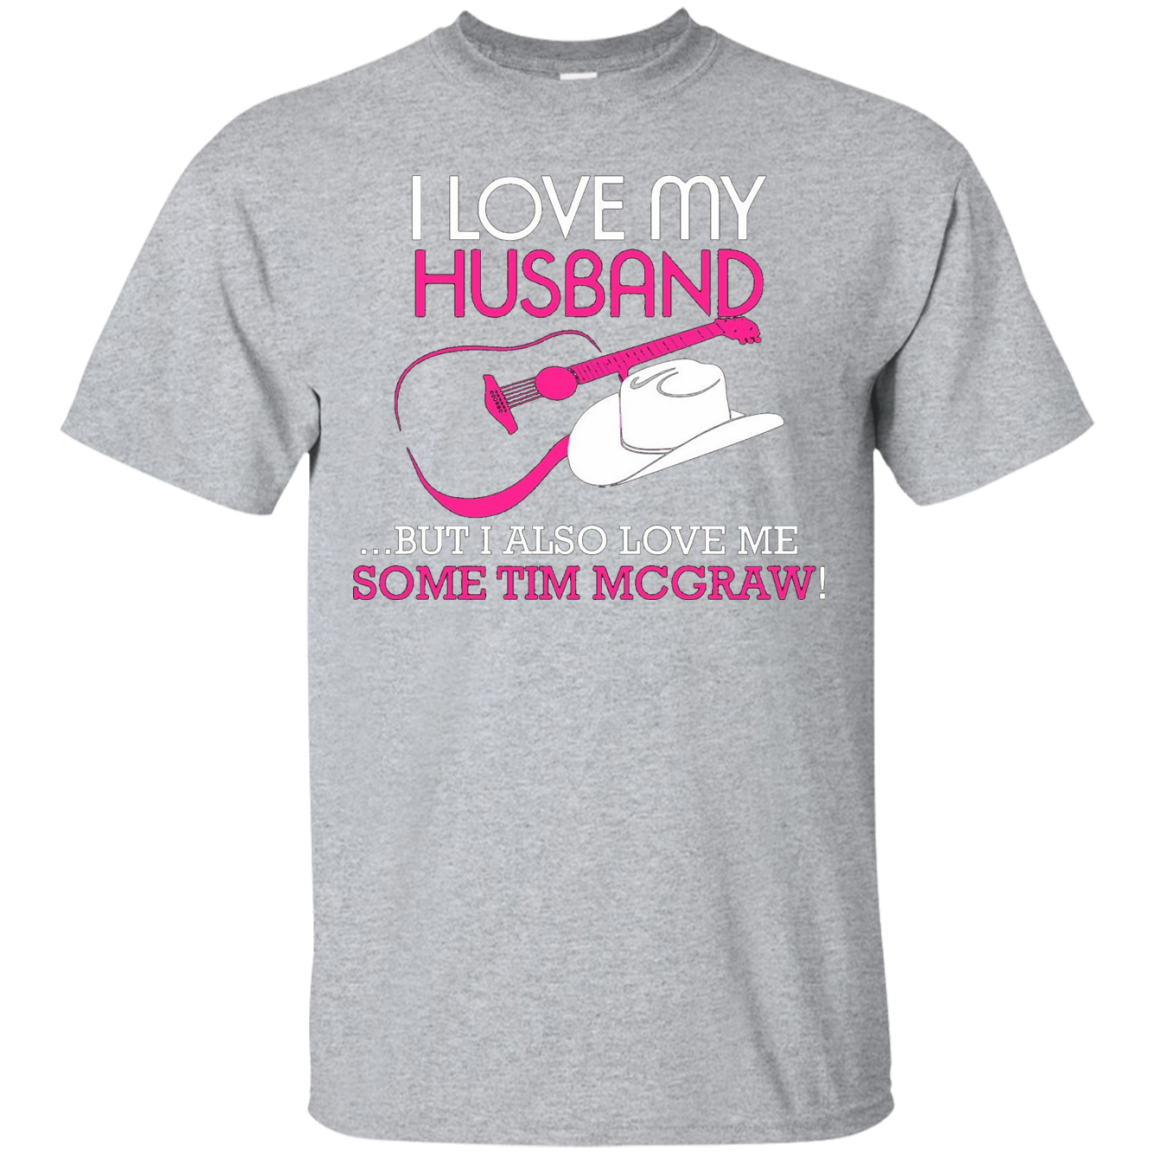 I Love My Husband But I Also Love Me Some Tim McGraw - T-Shirt